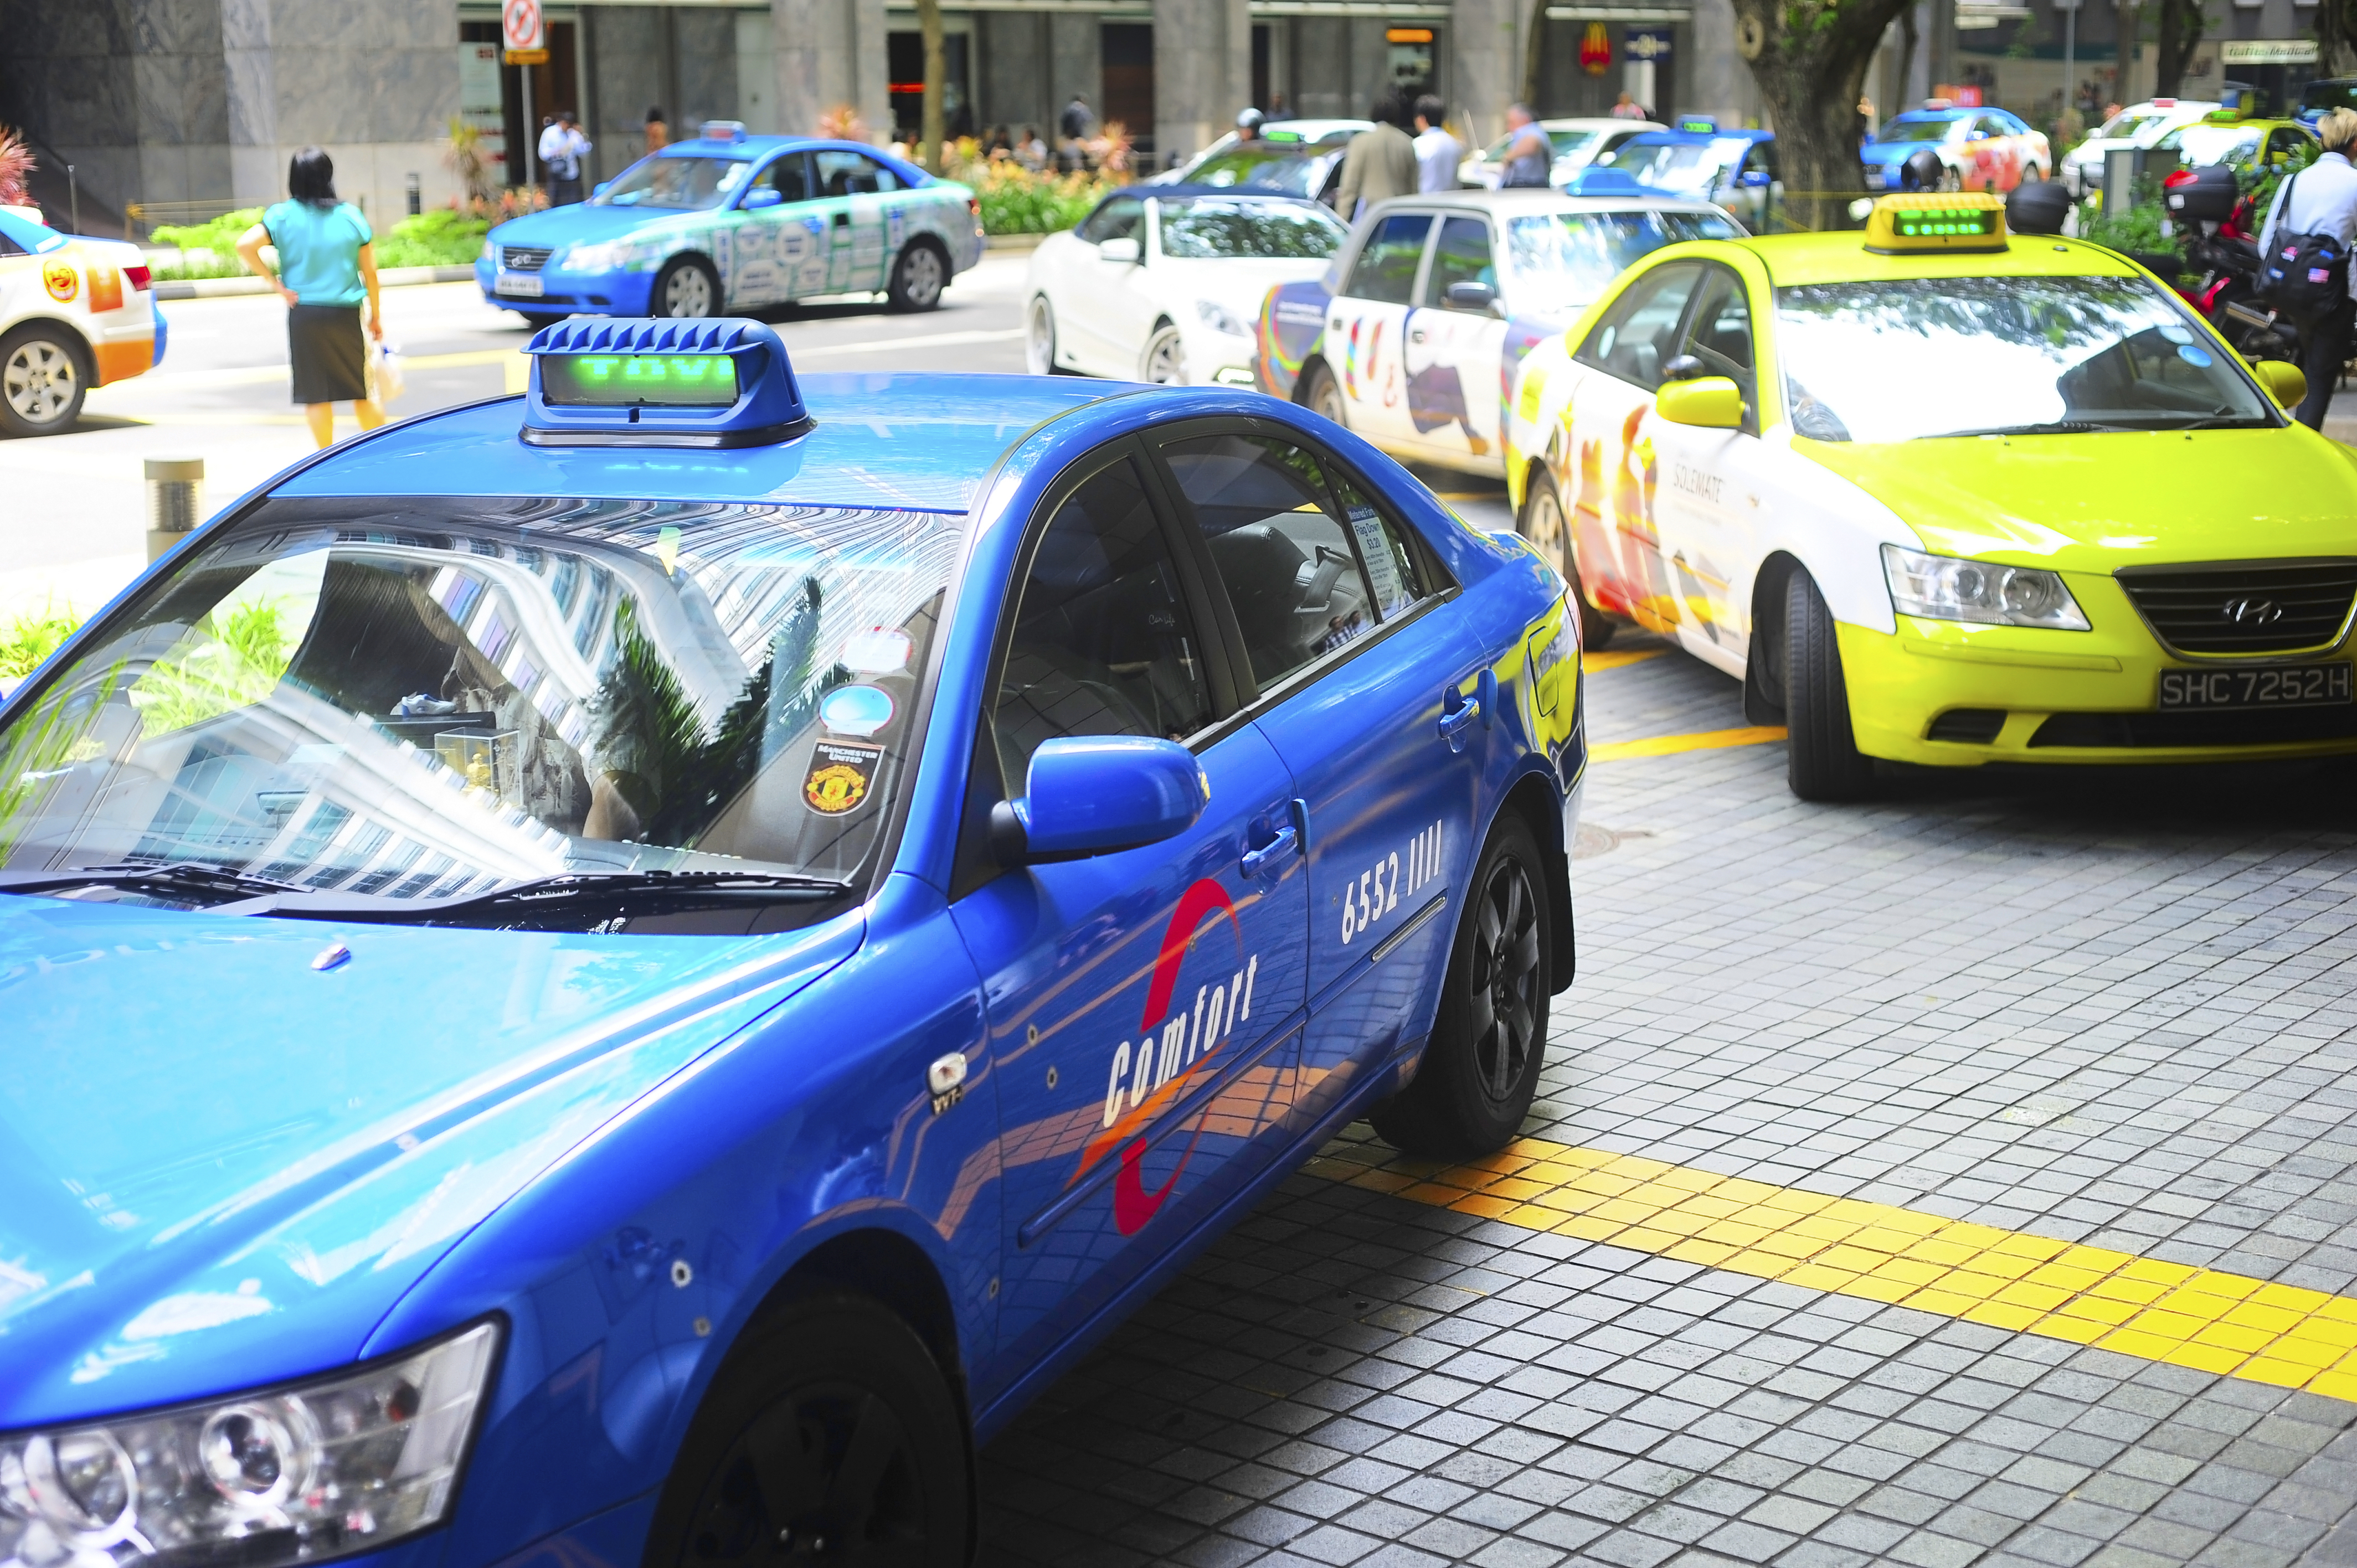 Senior Minister of State for Transport, Ng Chee Meng, seeking fair standards for Taxi and Private Hire vehicle services